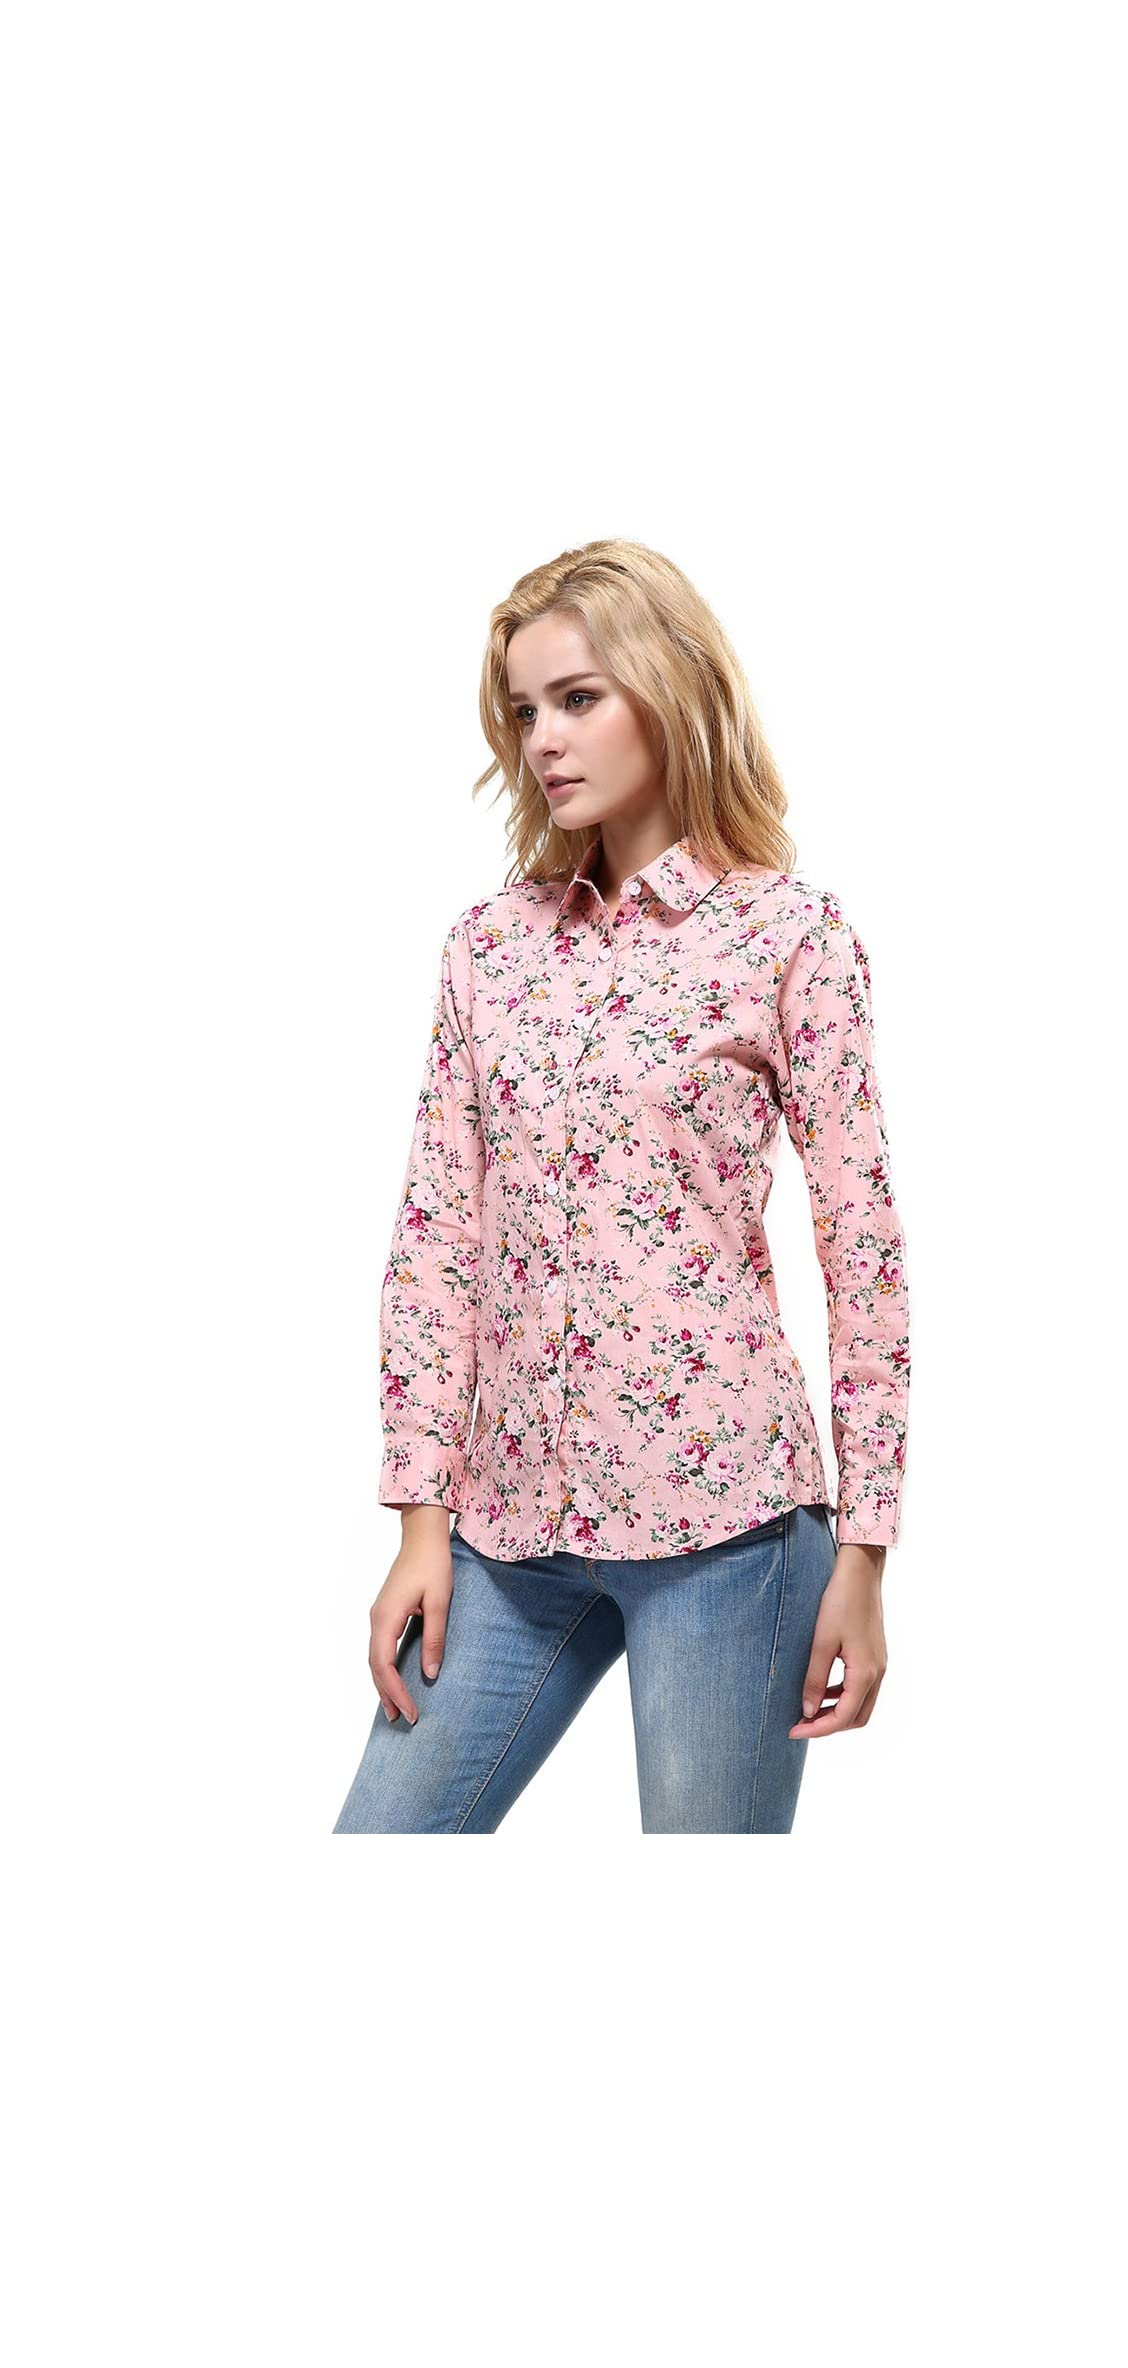 Women's Fashion Feminine Tops Blouse Work Button Down